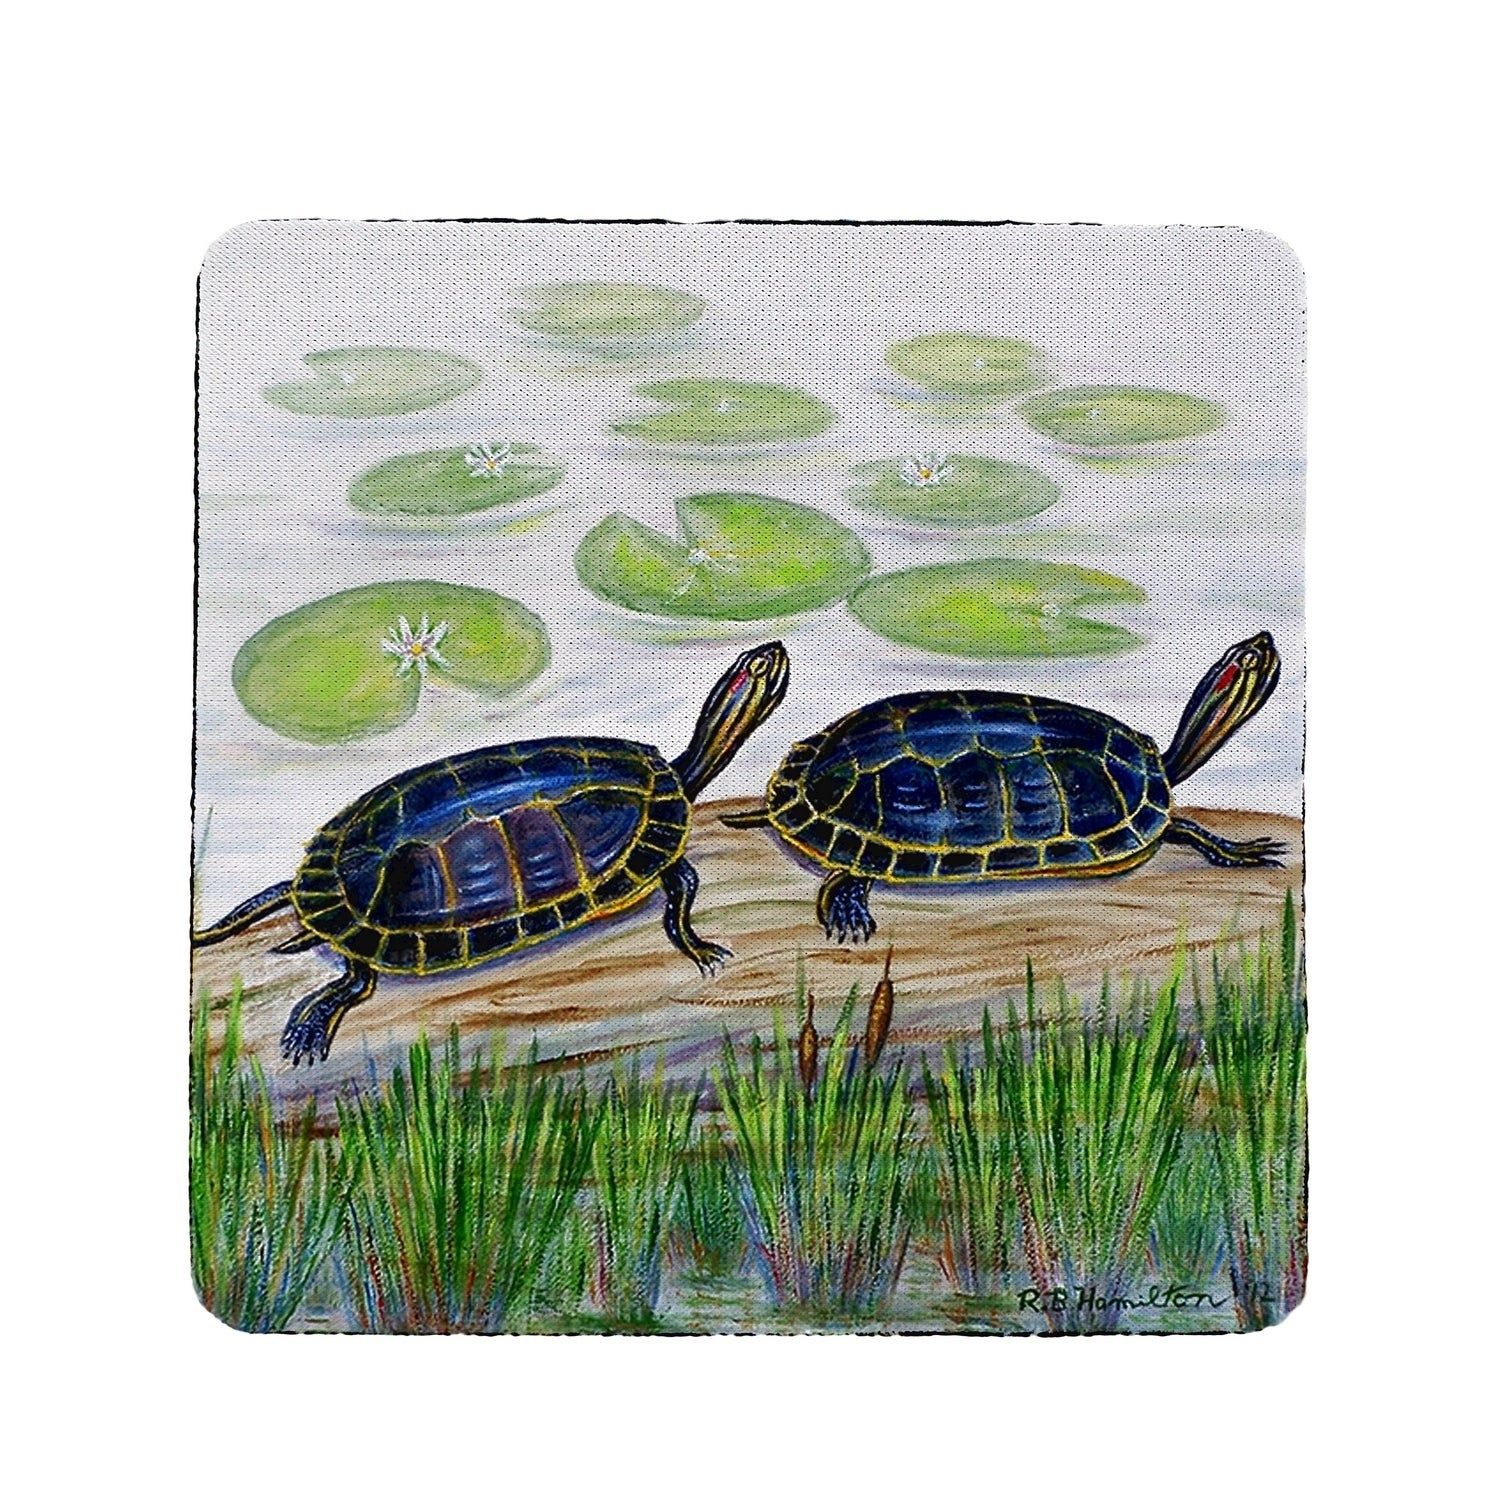 Two Turtles Coaster Set Of 4 Overstock 30374979